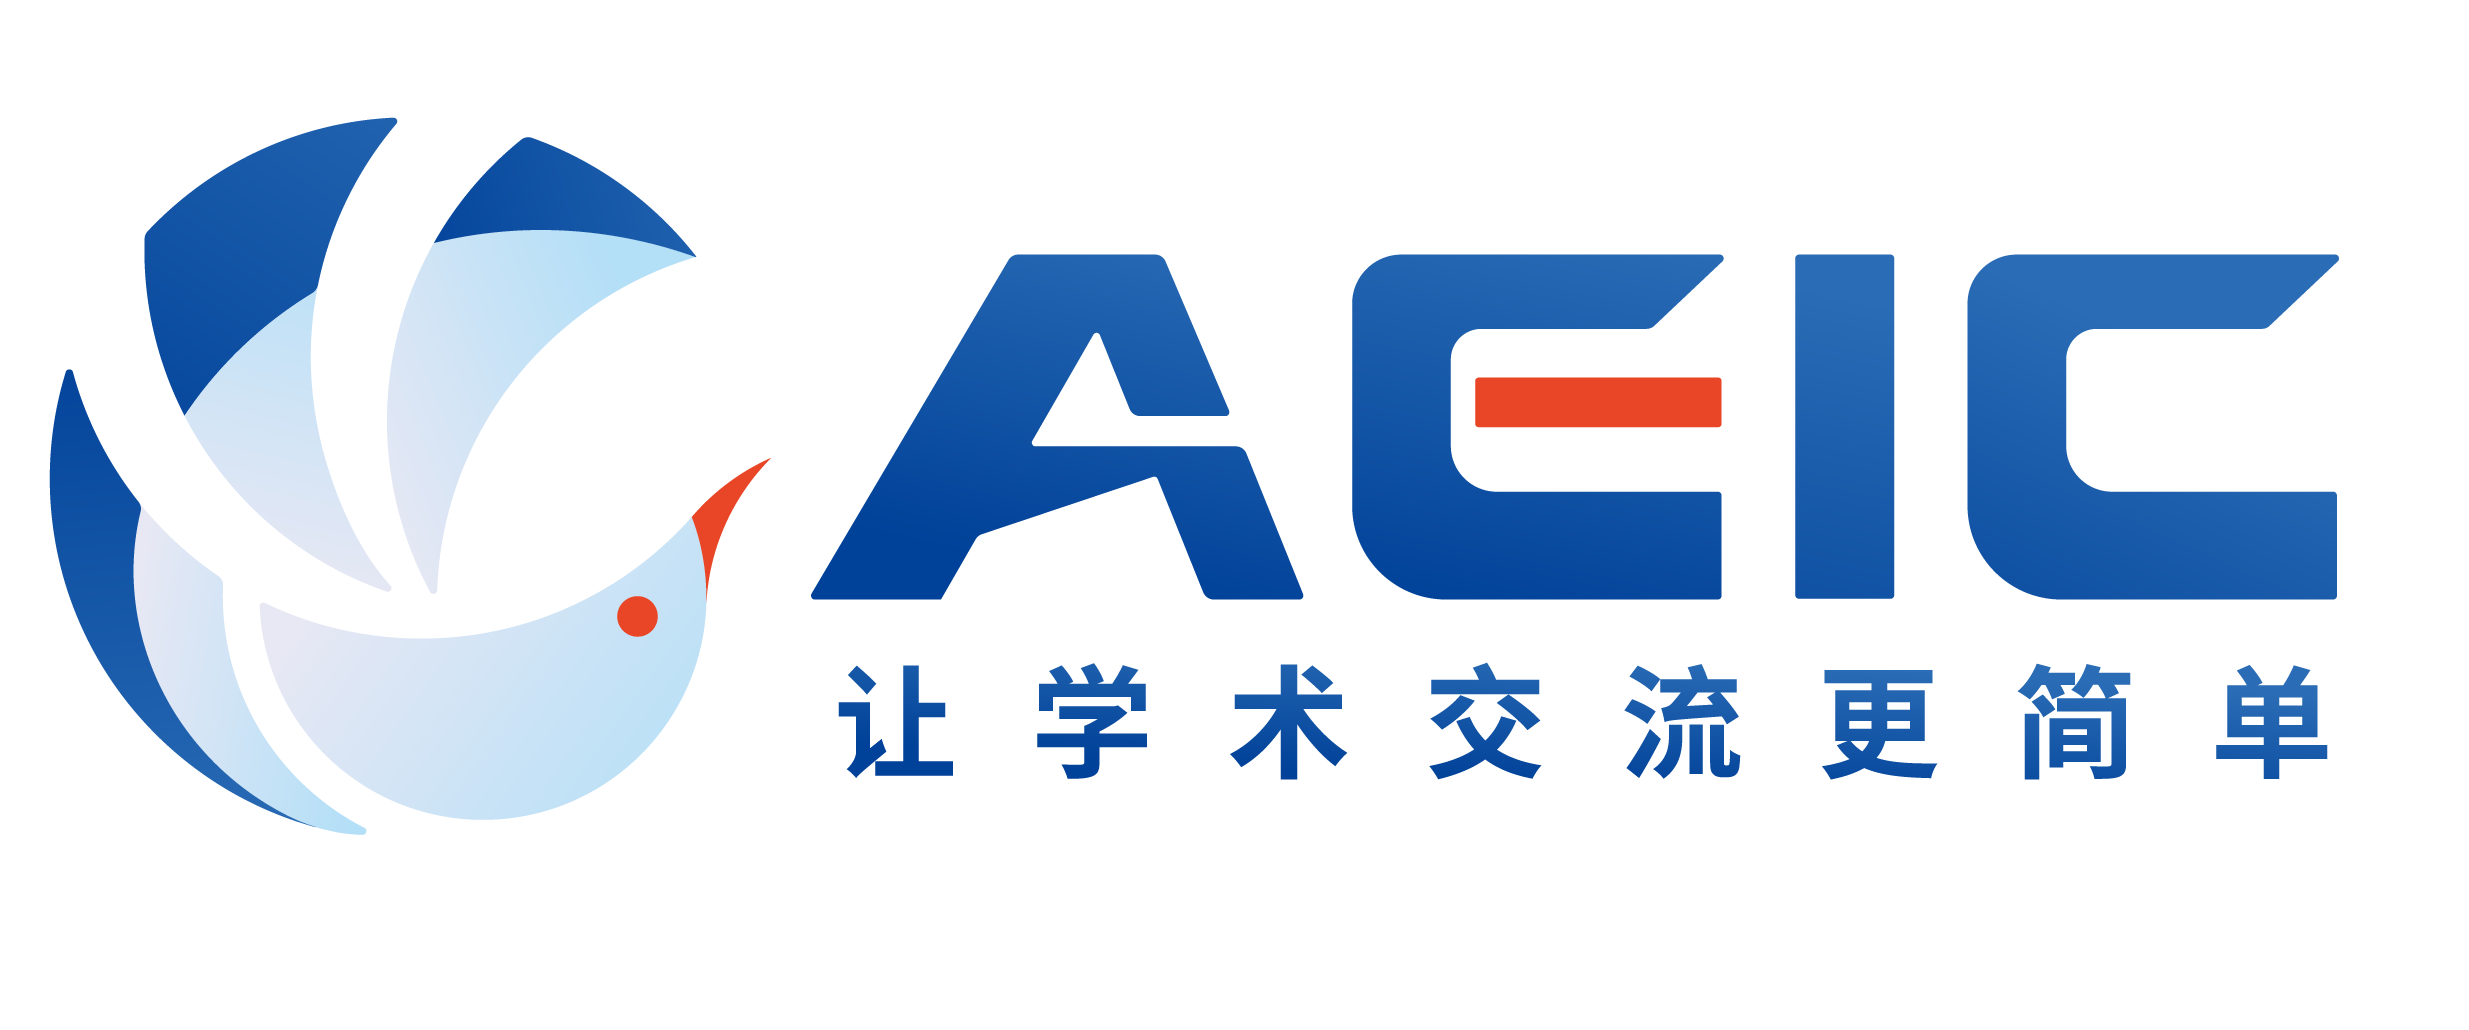 AEIC.png